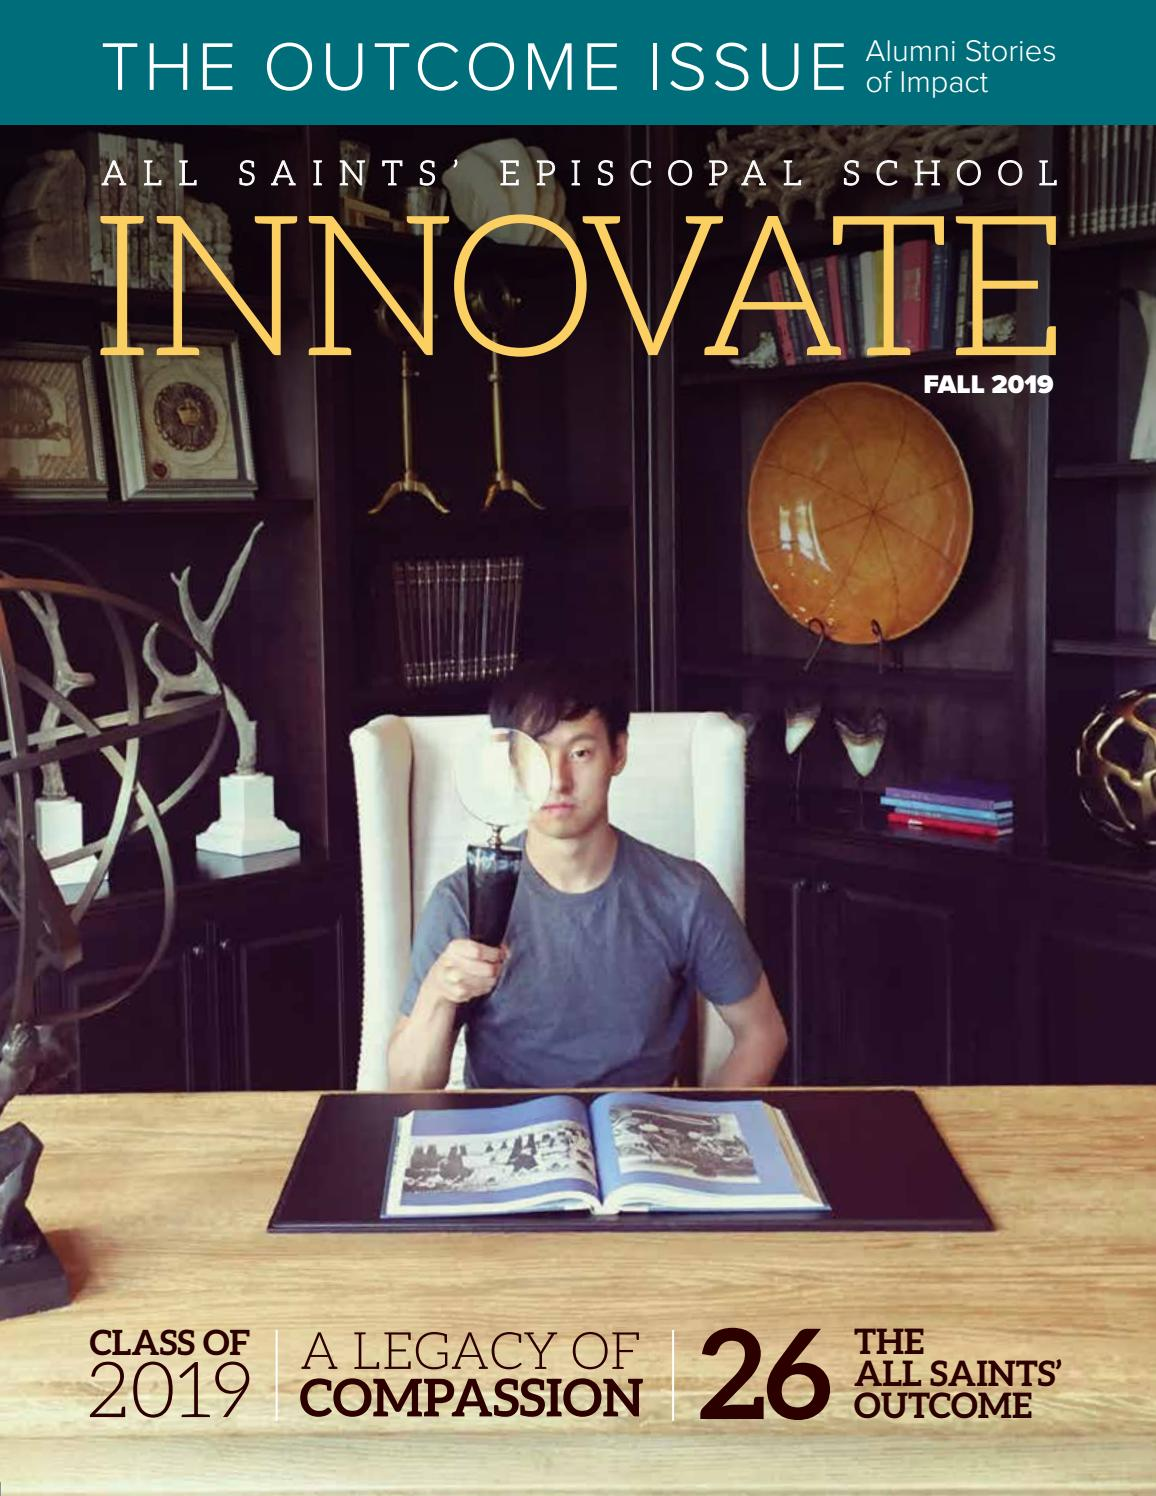 Pleasing Innovate Fall 2019 By All Saints Episcopal School Issuu Gmtry Best Dining Table And Chair Ideas Images Gmtryco